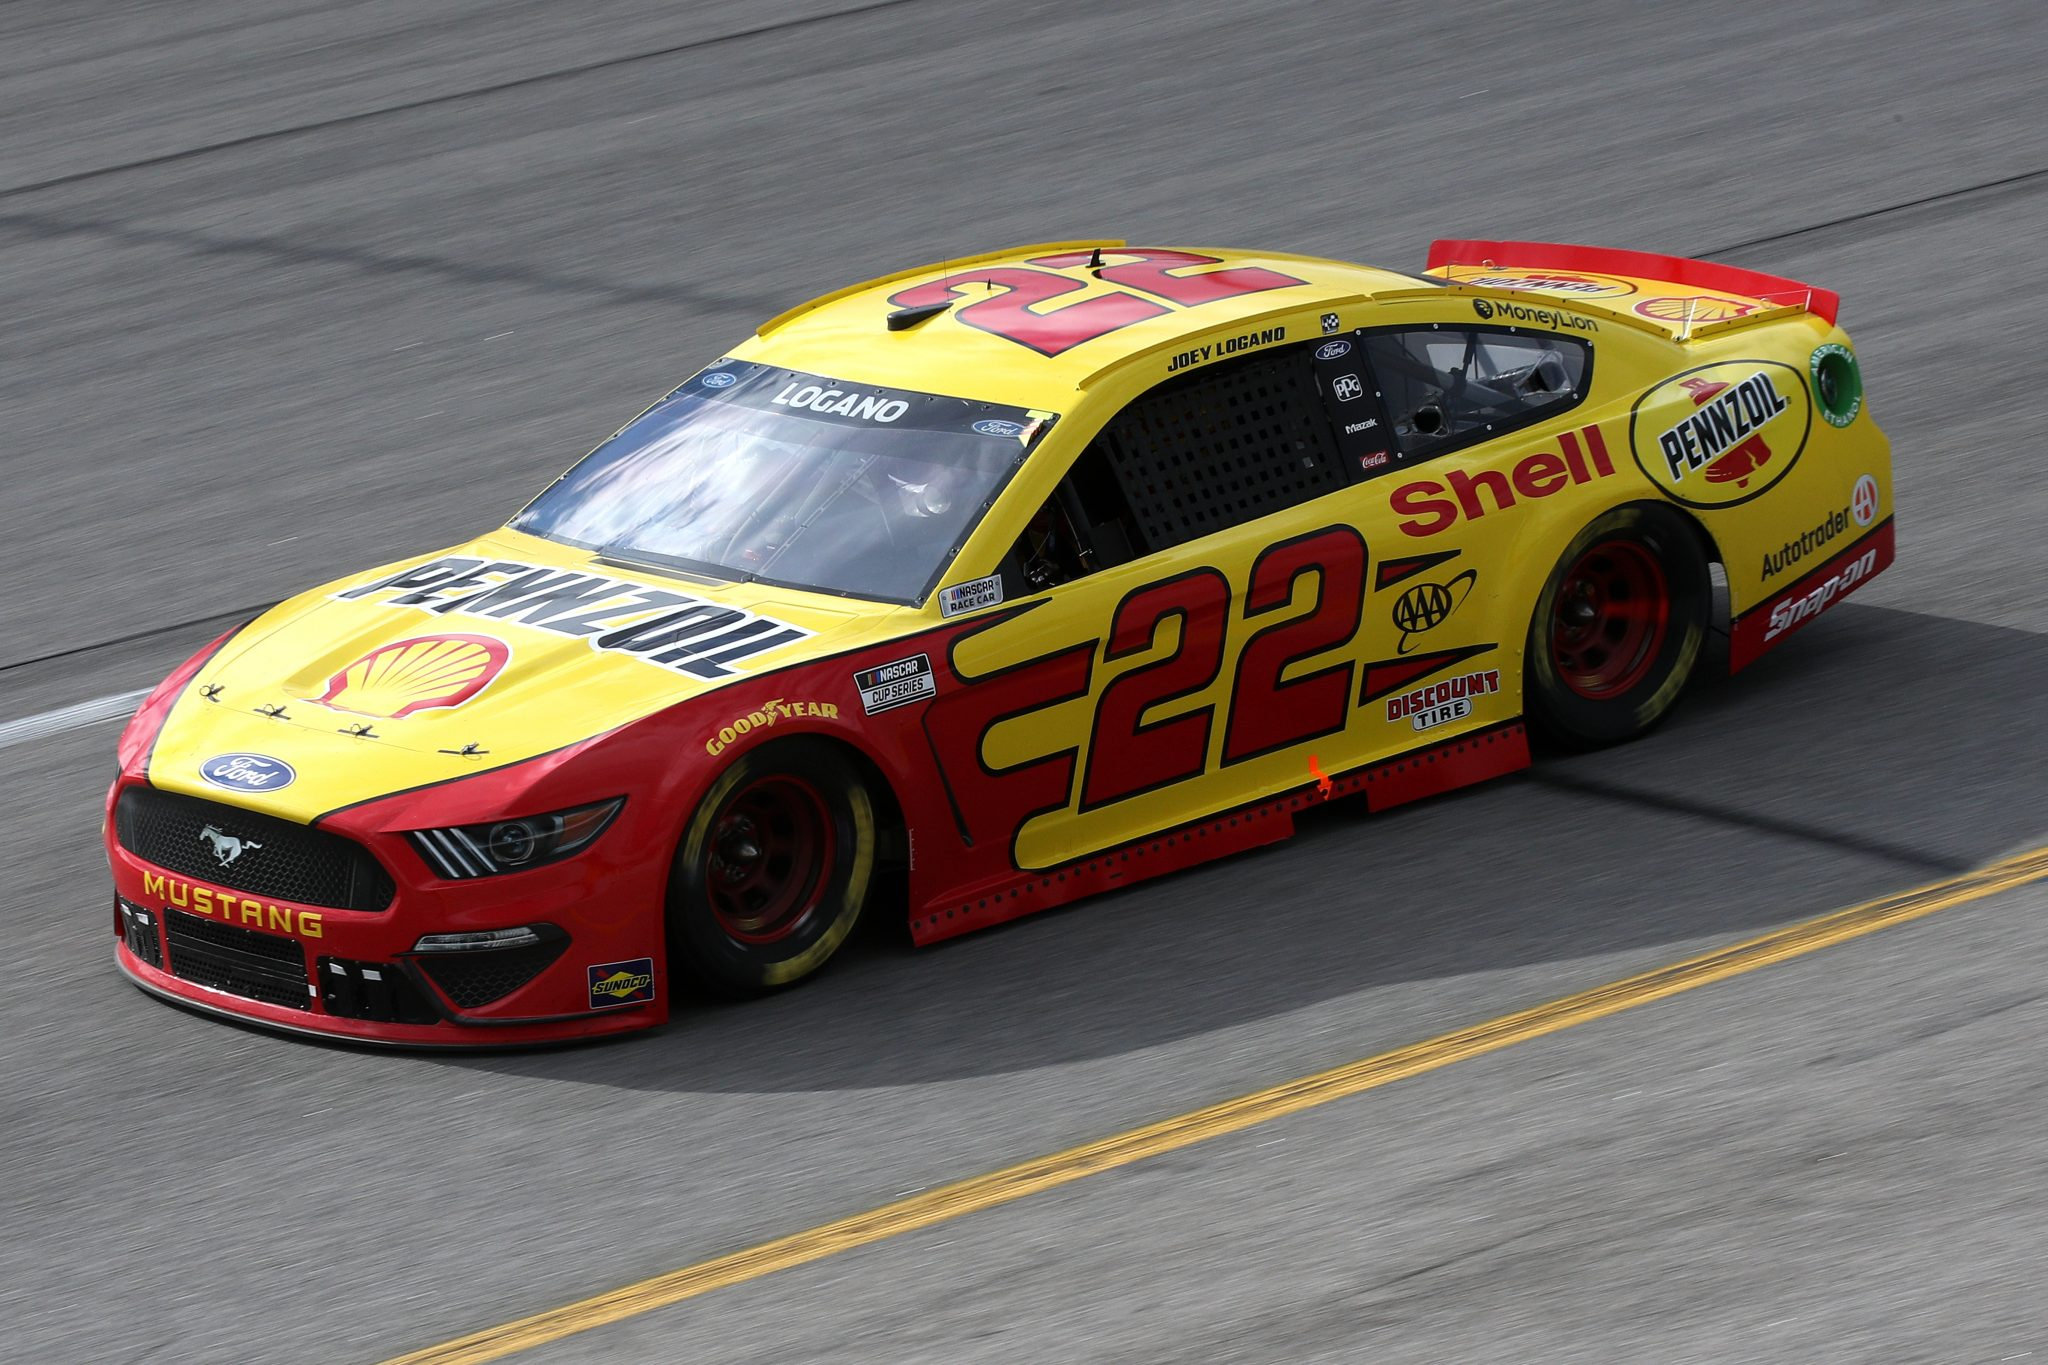 RICHMOND, VIRGINIA - APRIL 18: Joey Logano, driver of the #22 Shell Pennzoil Ford, drives during the NASCAR Cup Series Toyota Owners 400 at Richmond Raceway on April 18, 2021 in Richmond, Virginia. (Photo by Sean Gardner/Getty Images) | Getty Images